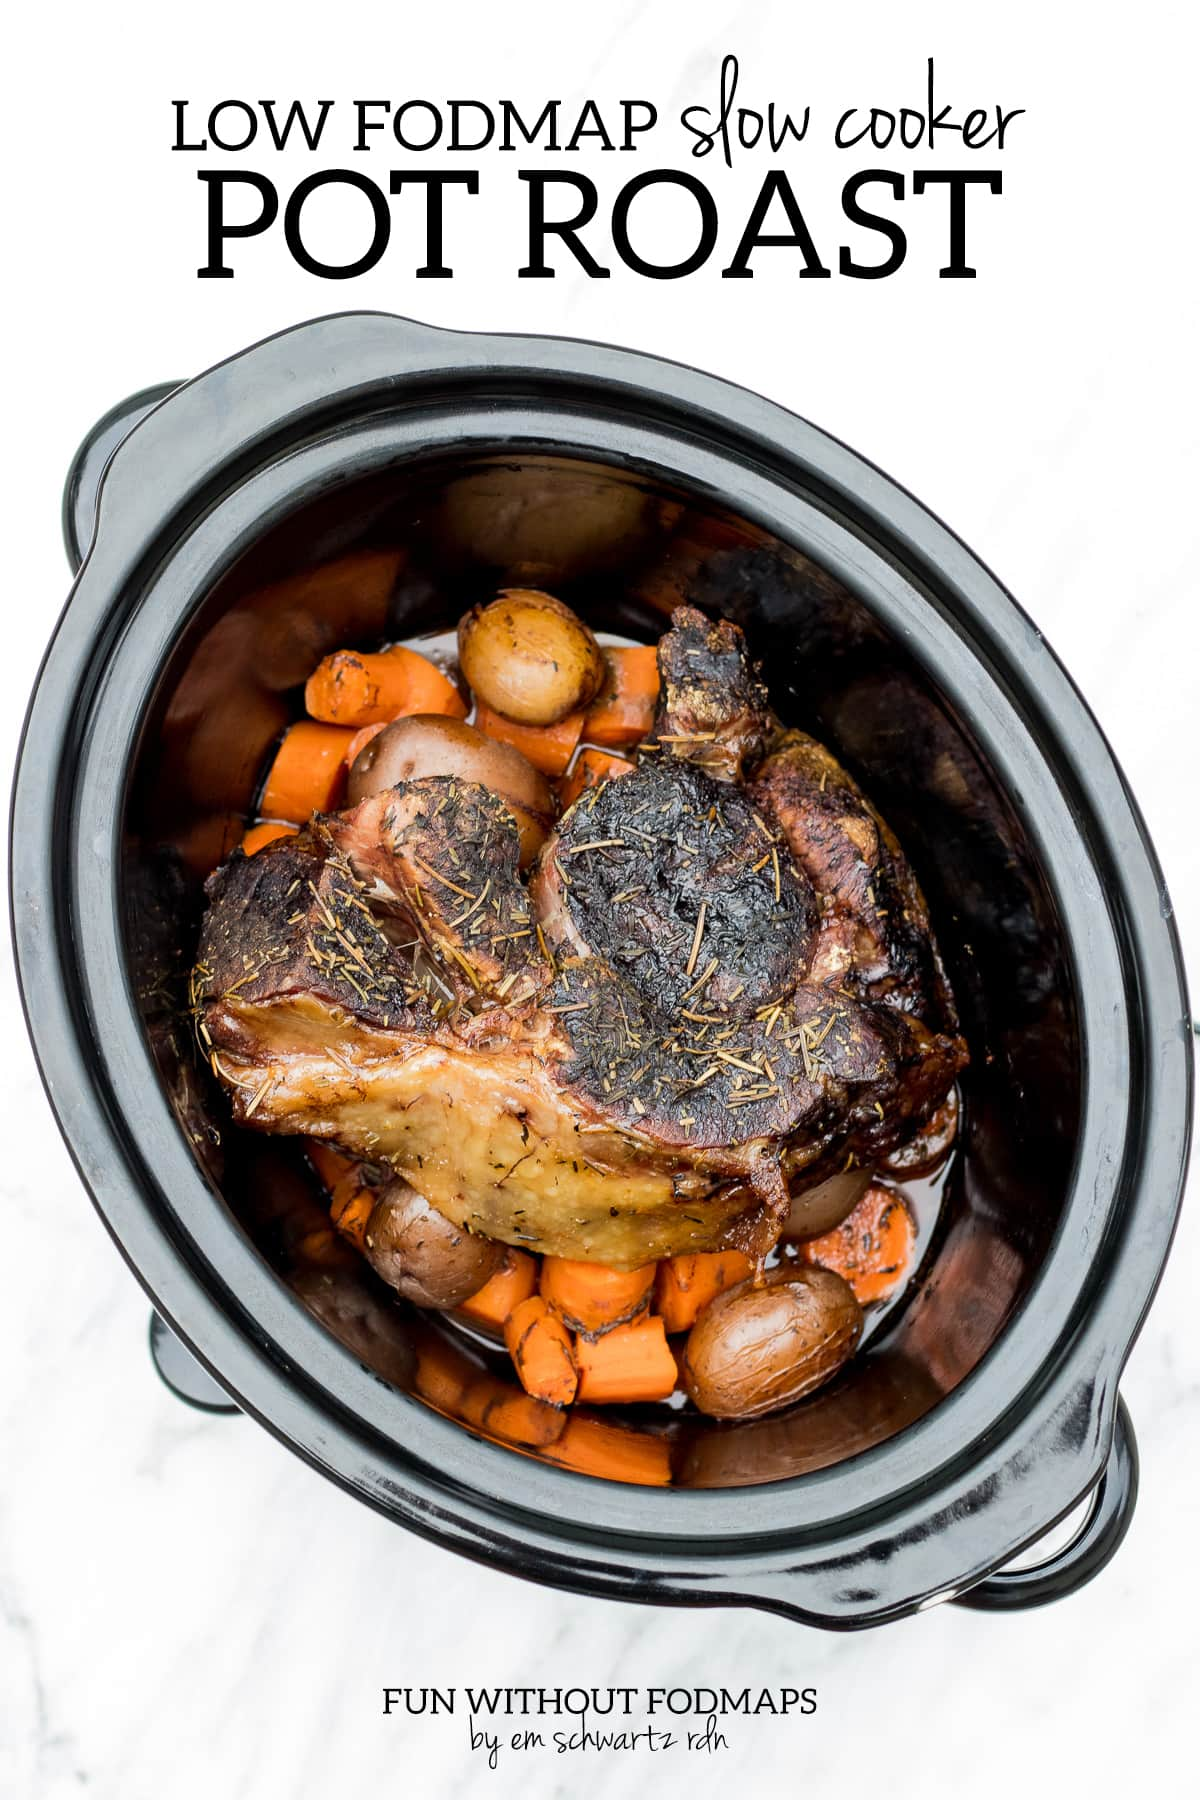 "Beef roast, carrots, and potatoes cooked in a slow cooker are sitting on a white marble surface. Above, a black text overlay reads ""Low FODMAP Slow Cooker Pot Roast""."